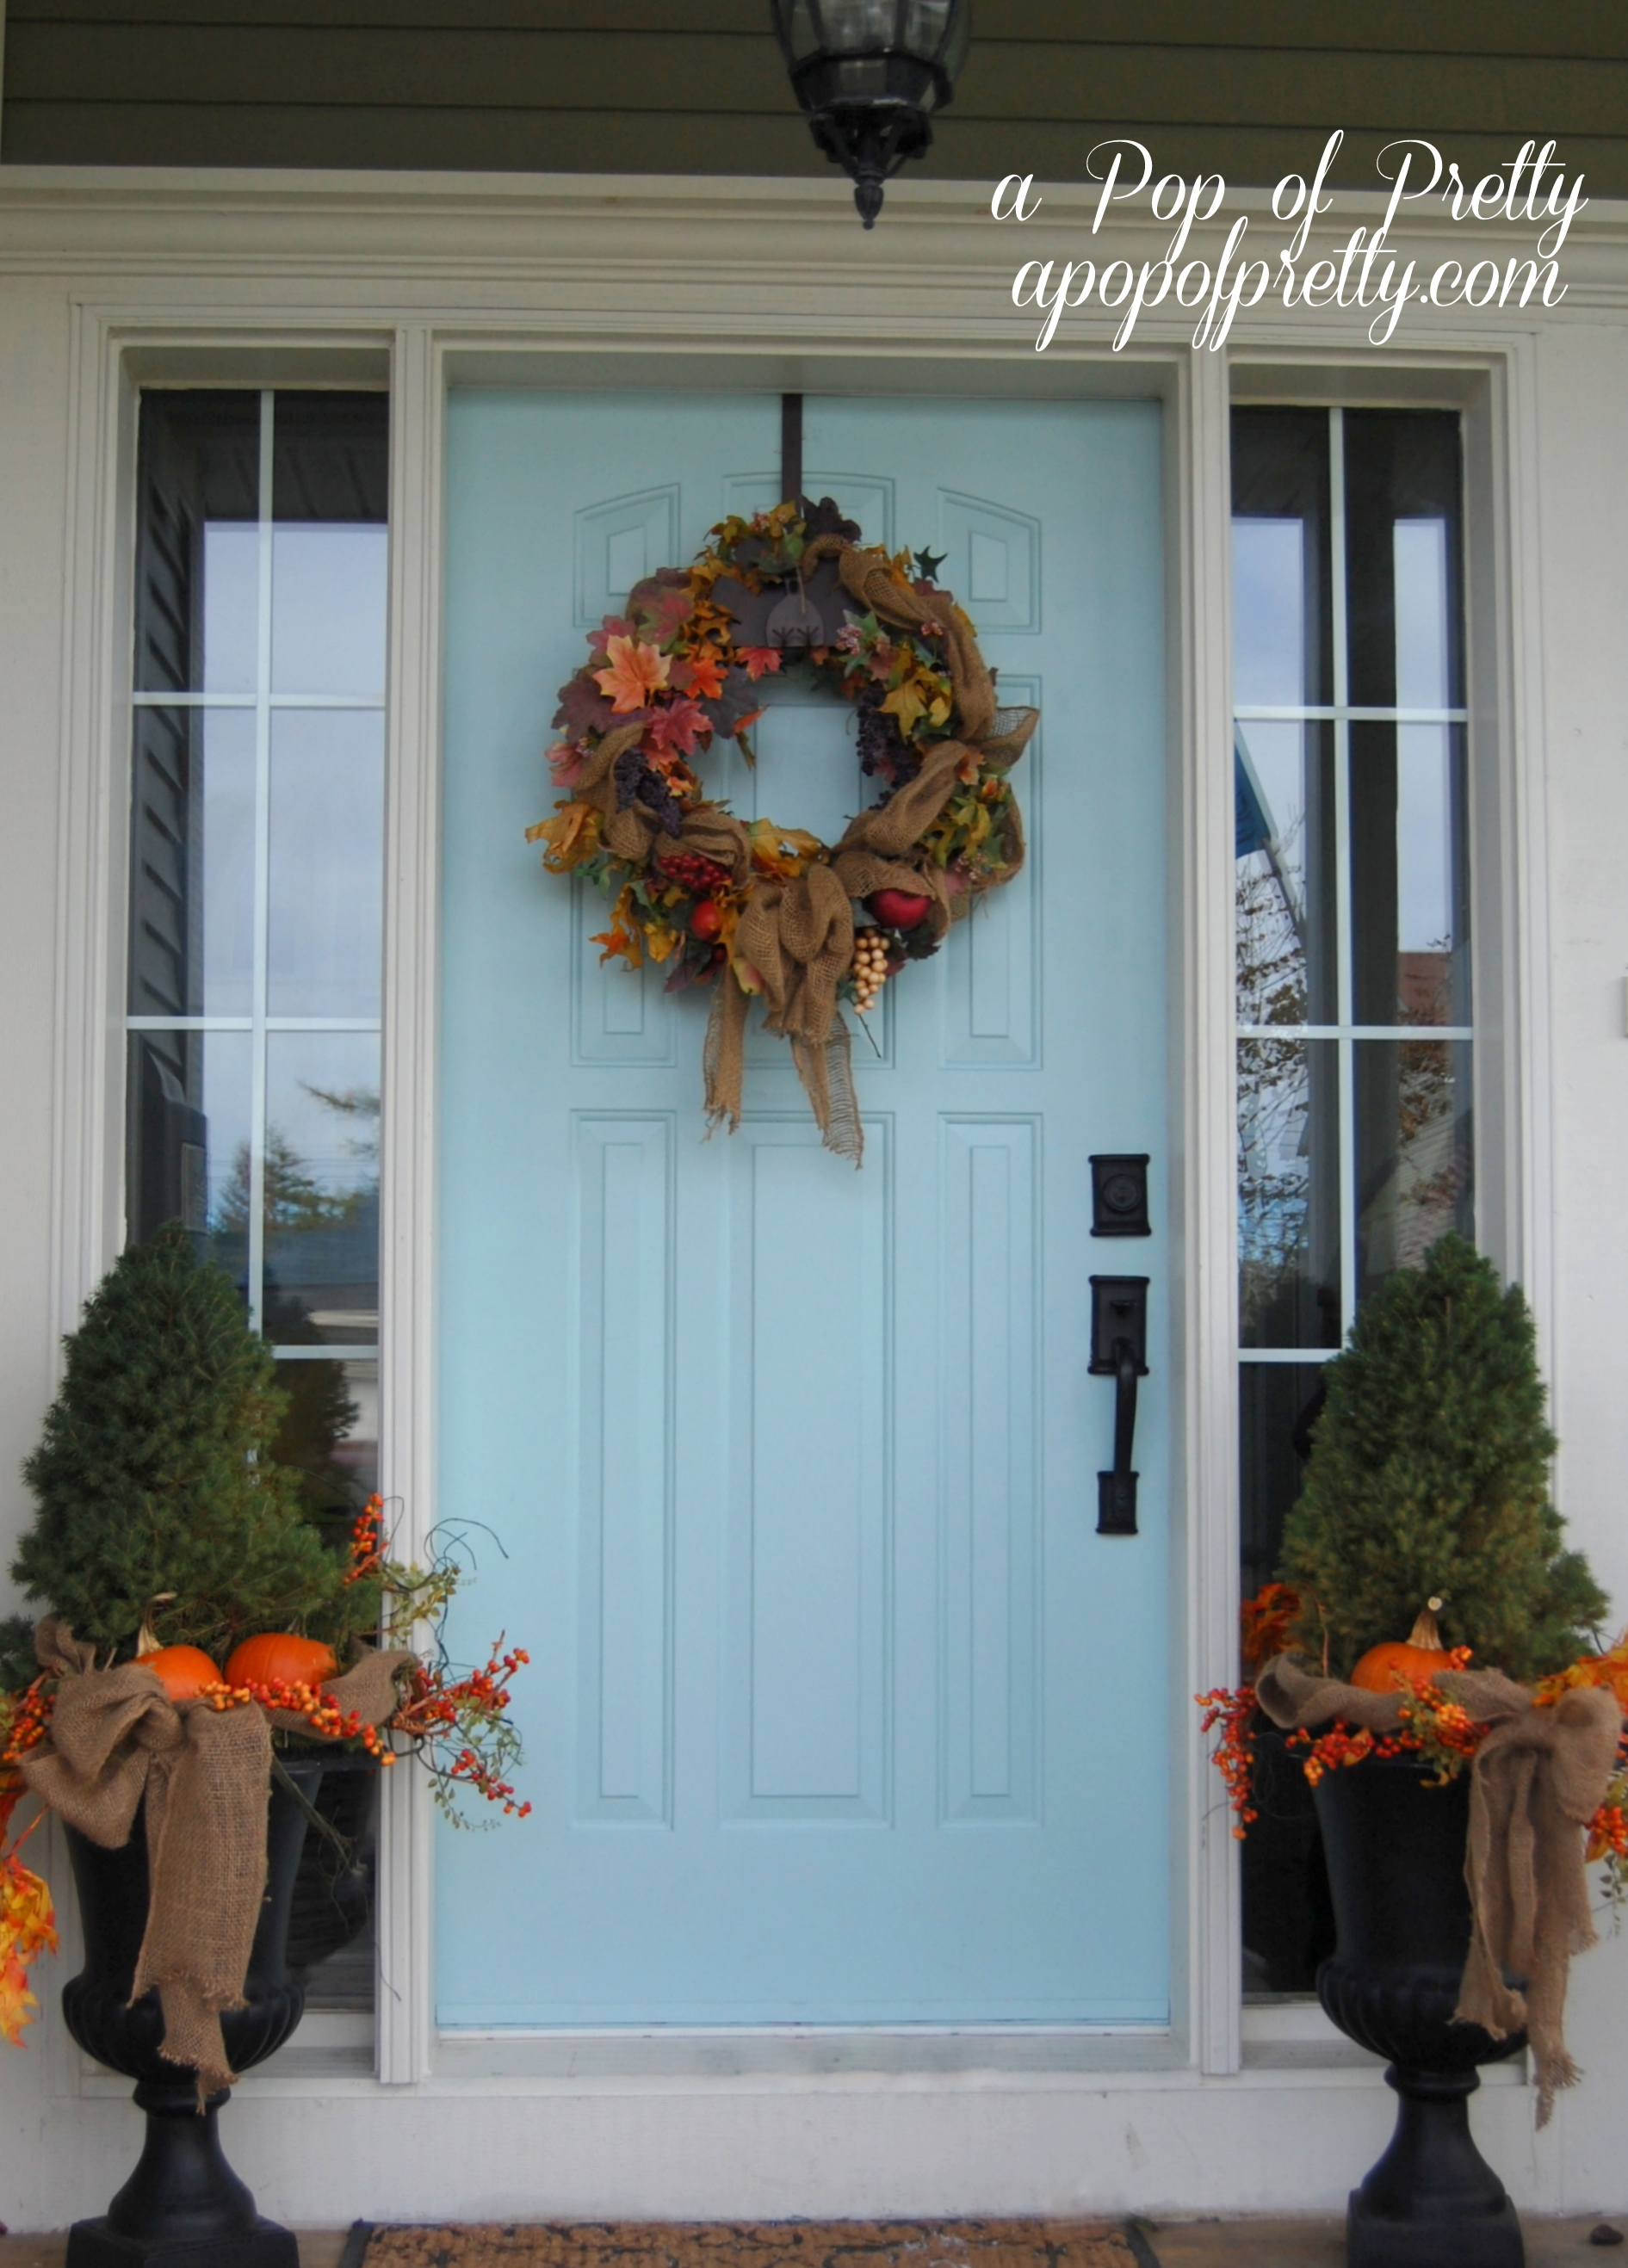 Fall decorating front porch ideas a pop of pretty blog - Fall front porch ideas ...